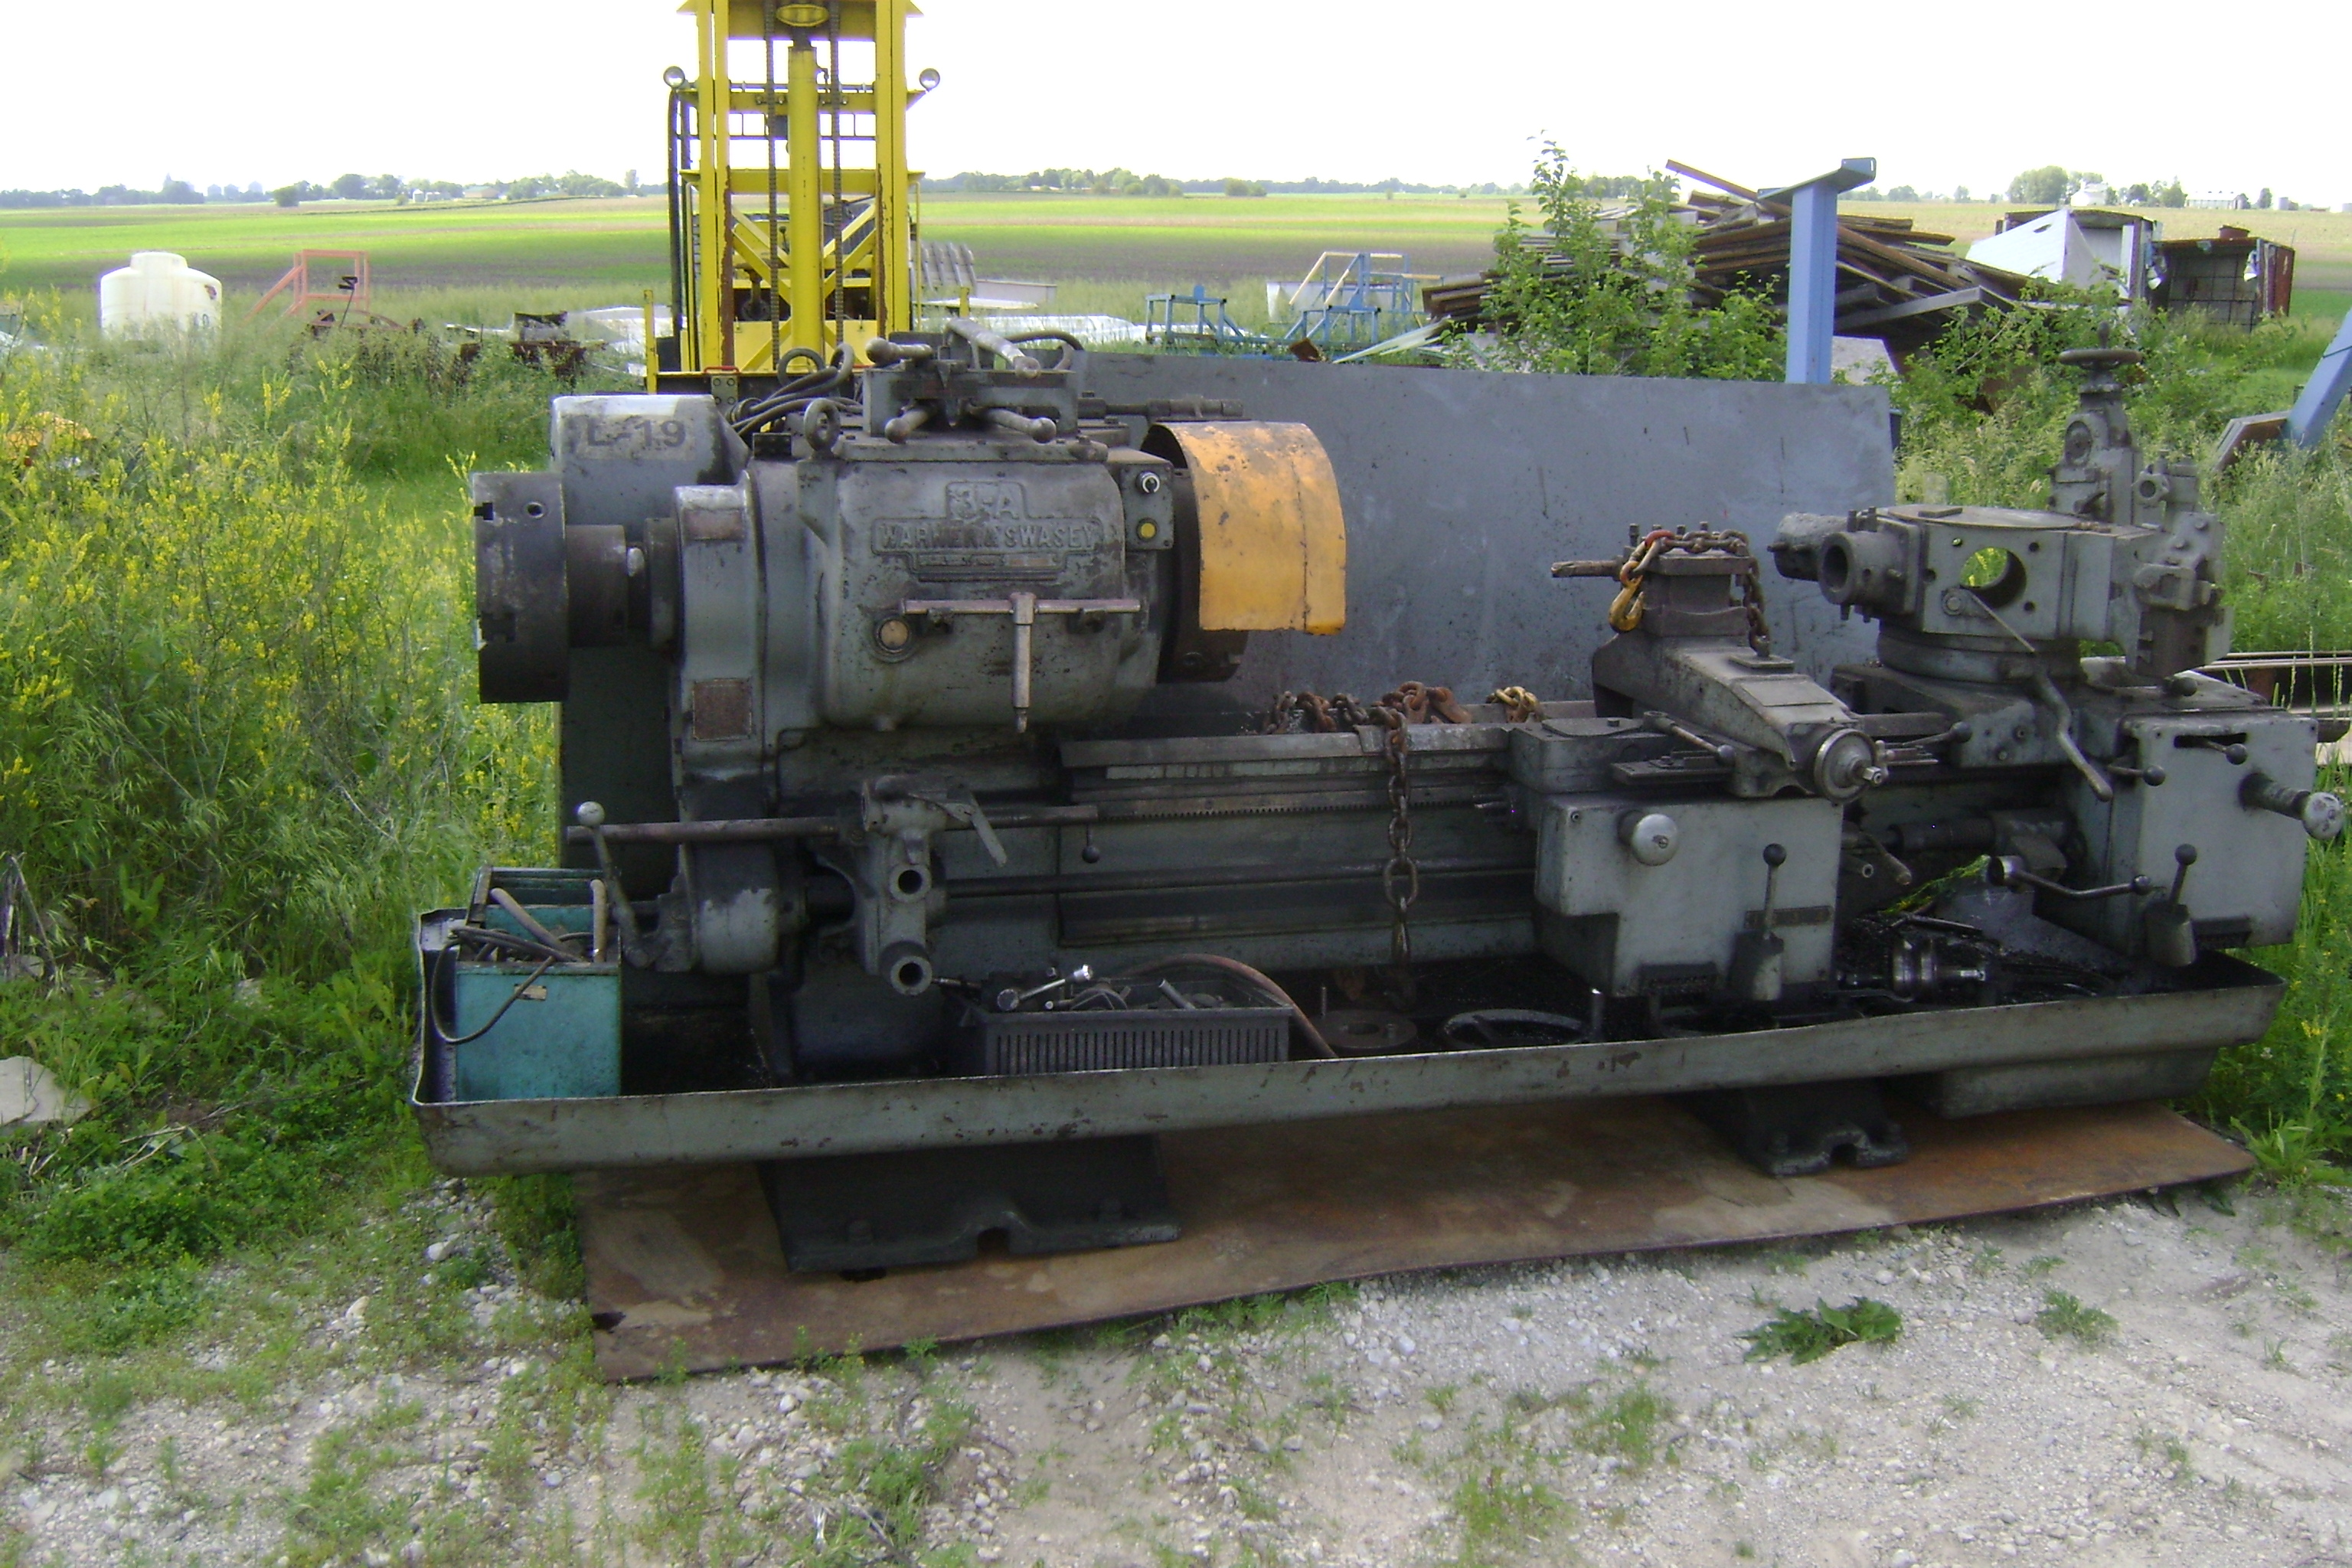 (1) PREOWNED WARNER SWASEY TURRET LATHE 3A M-1950